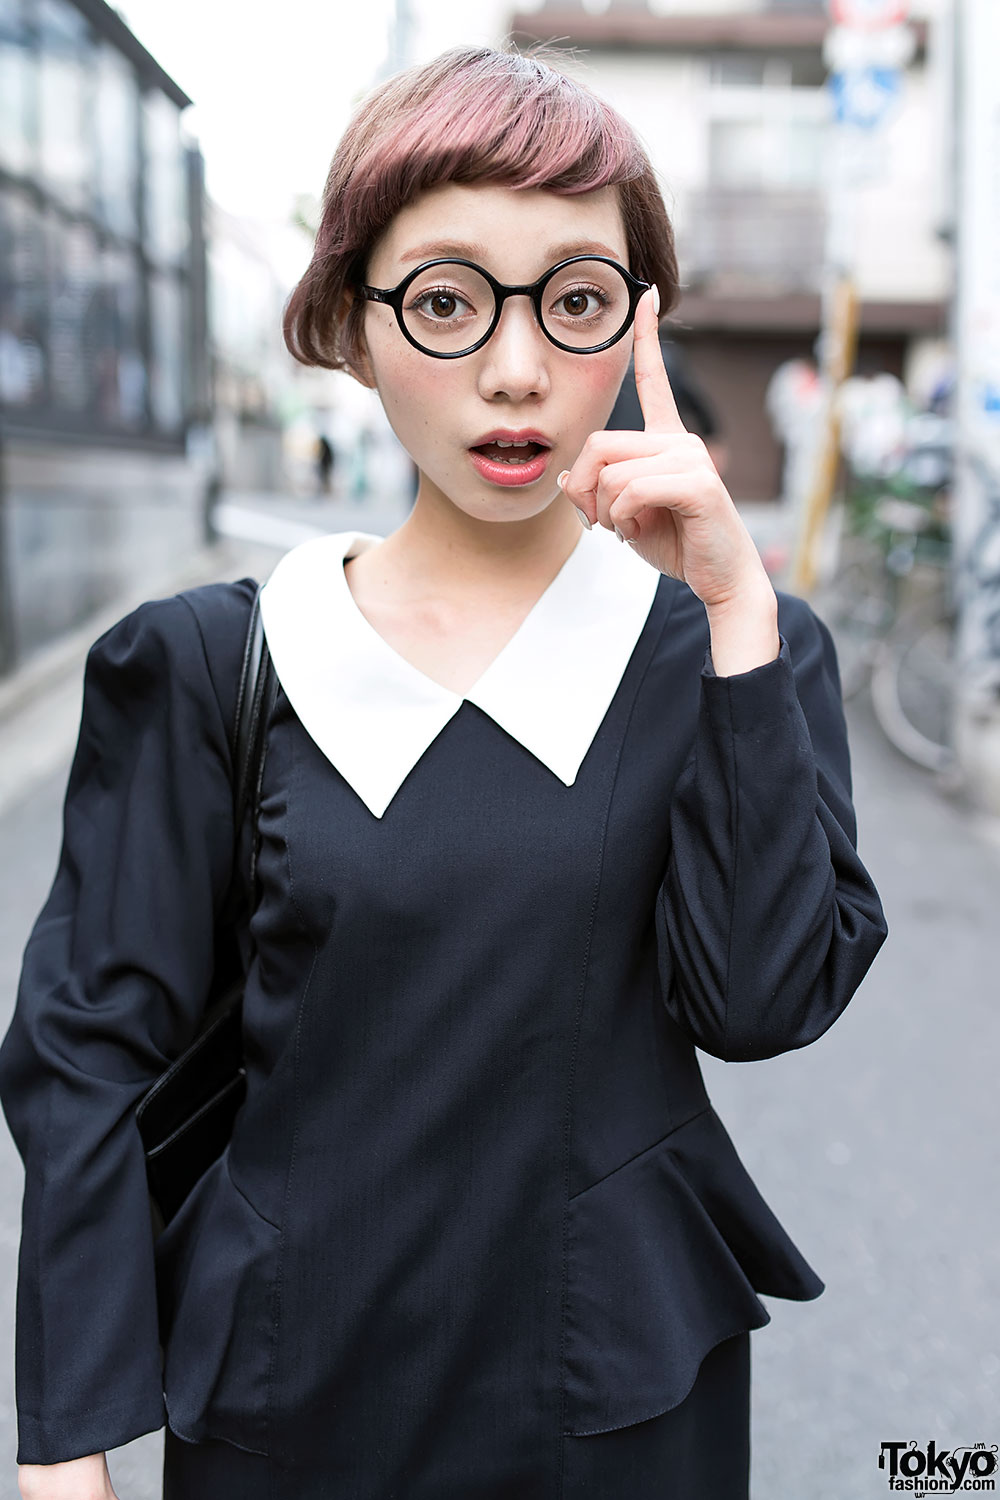 Cute Short Hairstyle Round Glasses & Peter Pan Collar Dress in Harajuku